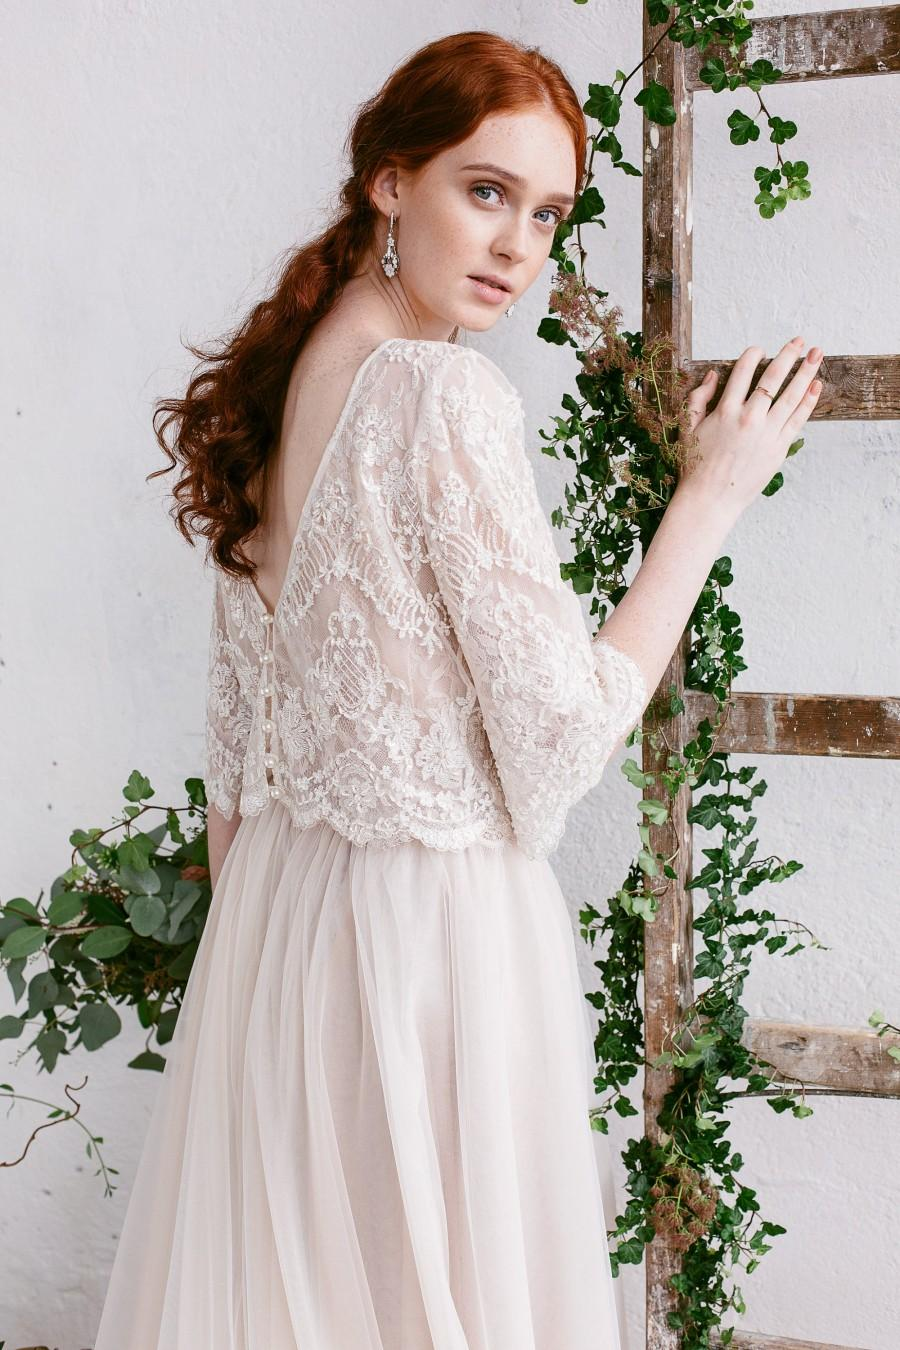 Wedding Top Bridal Separates Nude Lace Open Back V Beaded Bohemian Bride Floral Claire: Floral Lace Top Wedding Dress At Websimilar.org